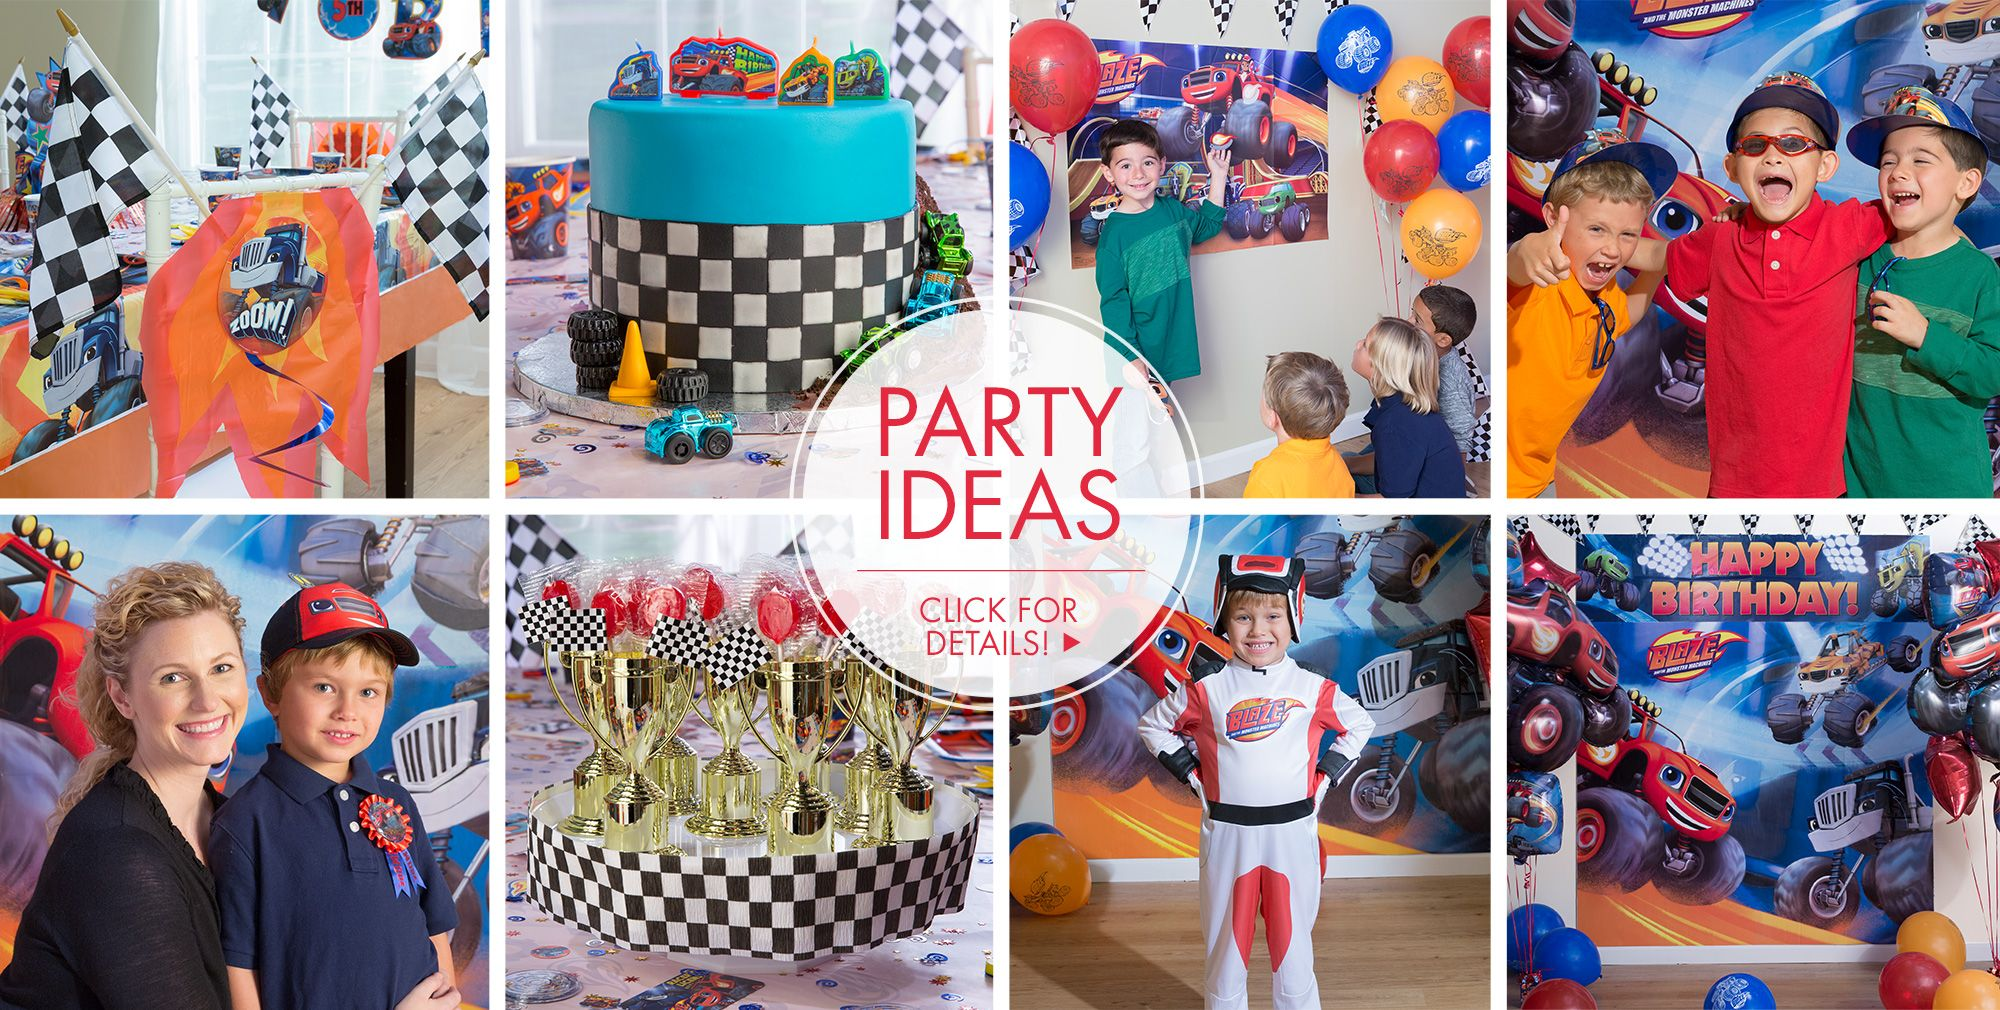 Blaze – Party Ideas